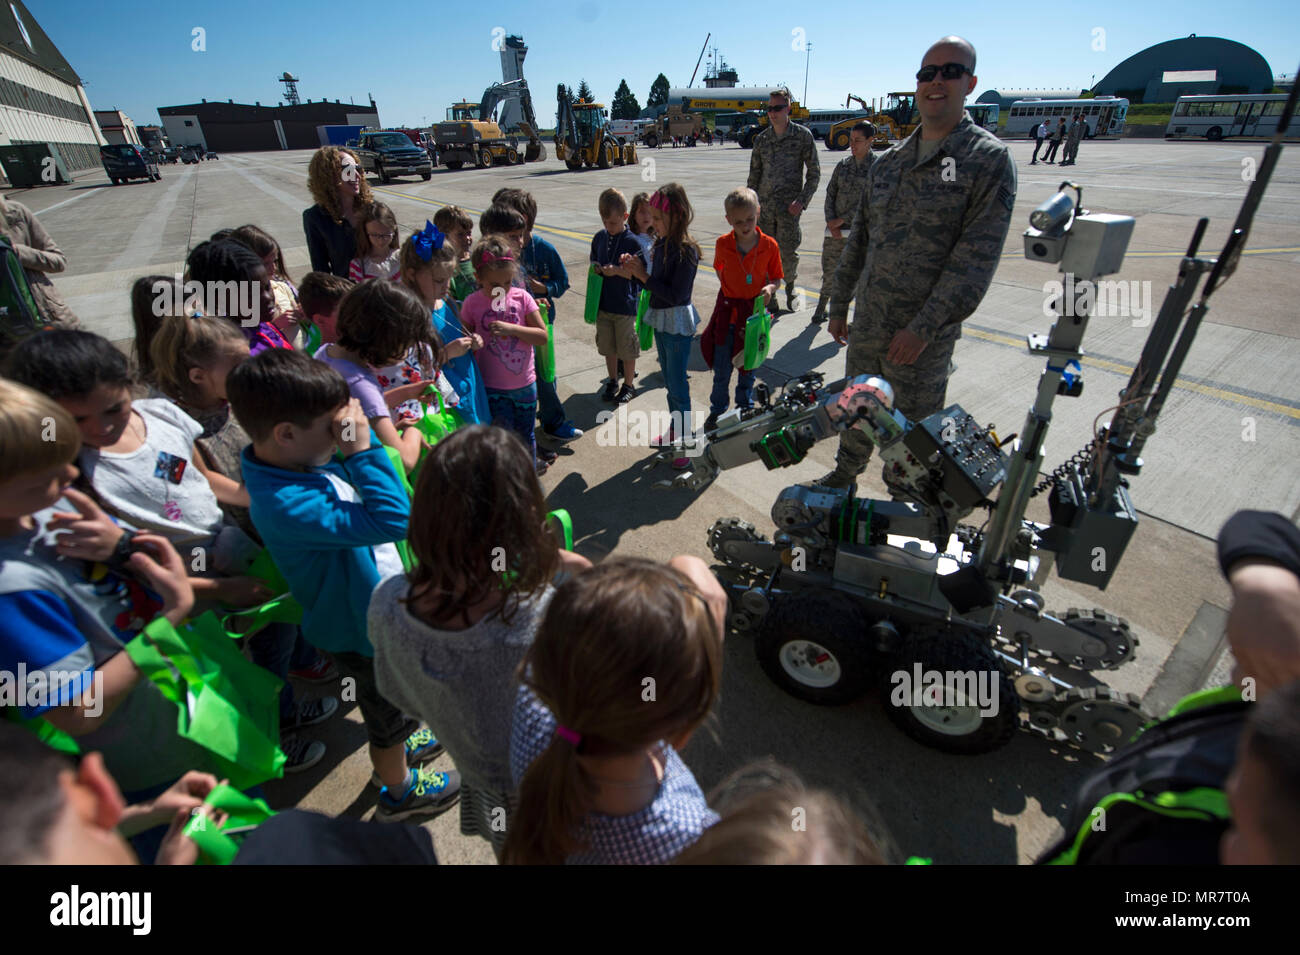 U.S. Air Force Staff Sgt. Brook Hamilton, 52nd Civil Engineer Squadron explosive ordnance disposal team member, shows children from Spangdahlem Elementary School an EOD robot during Children's Deployment Days at Spangdahlem Air Base, Germany, May 22, 2017. The event helped children better understand a deployment and included a pre-deployment brief, individual protective equipment station and multiple static displays for children to learn about. (U.S. Air Force photo by Airman 1st Class Preston Cherry) - Stock Image